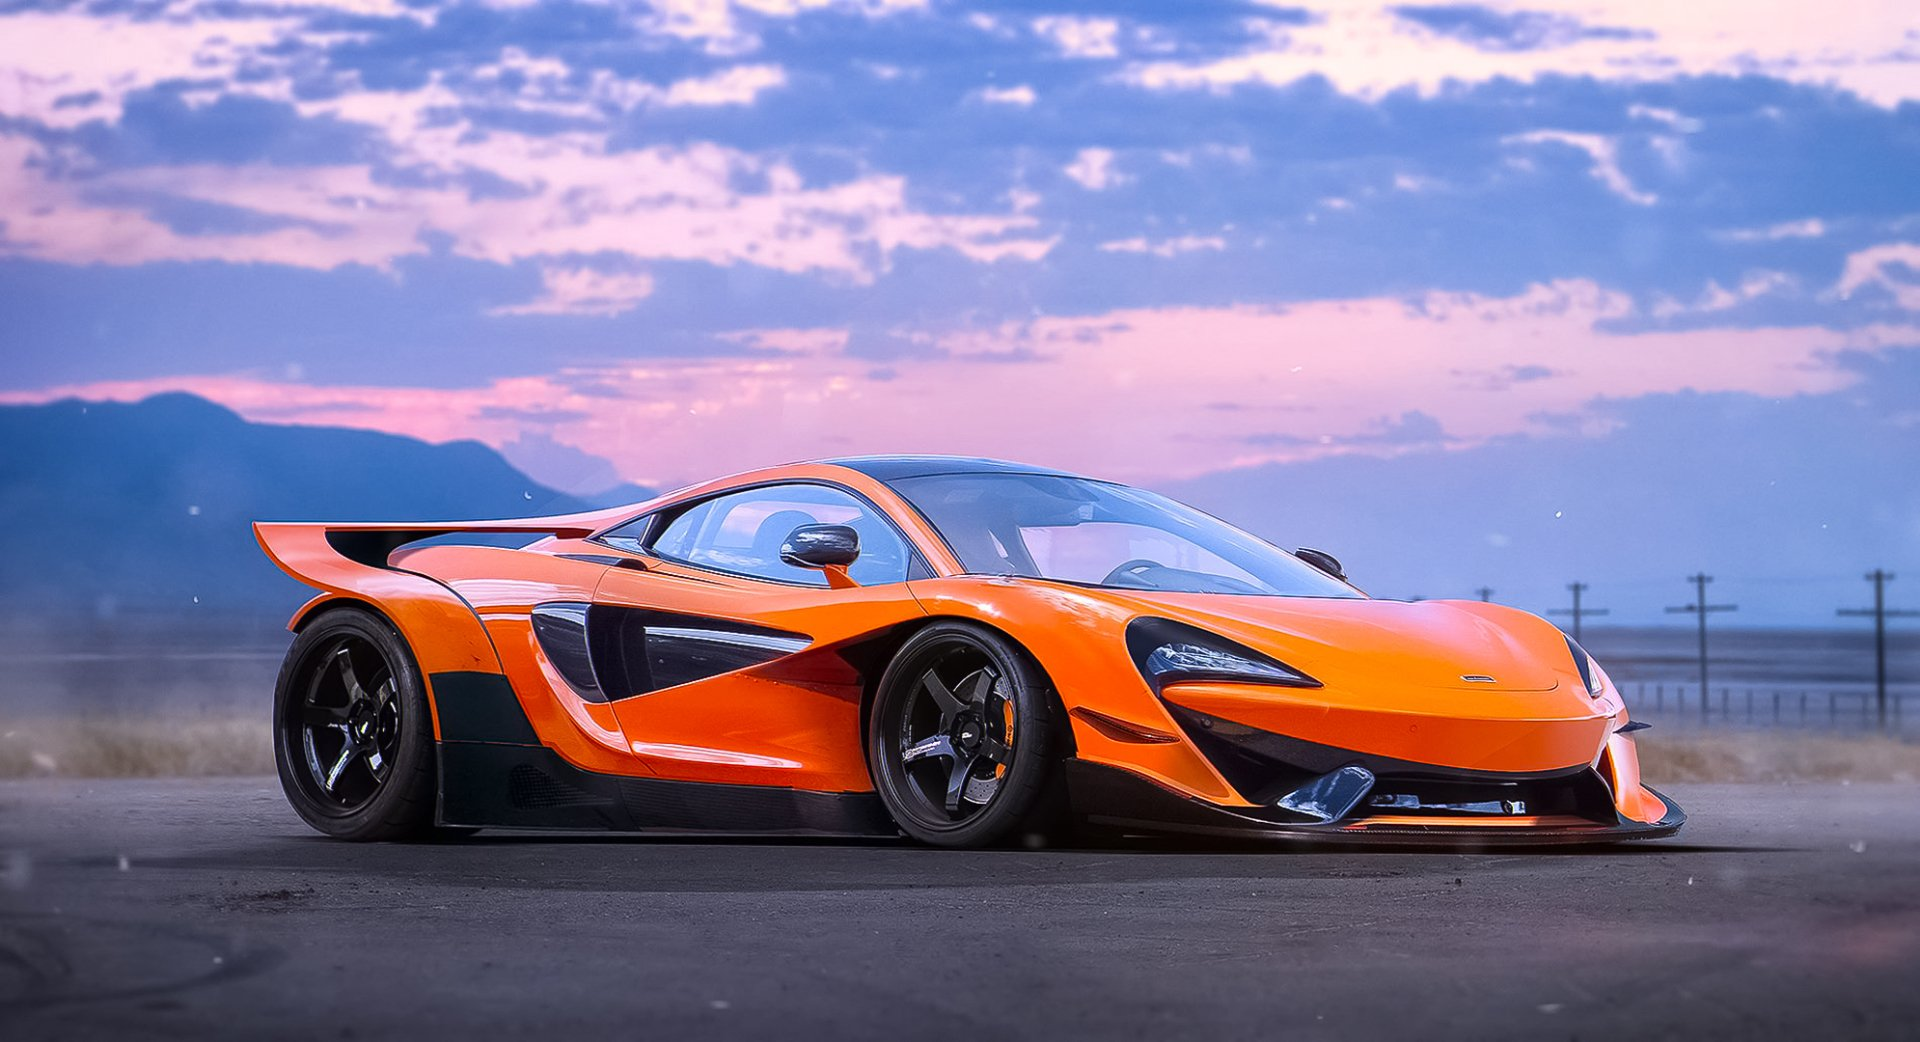 Vehicles - McLaren 570S  Orange Car Supercar Car McLaren Sport Car Wallpaper